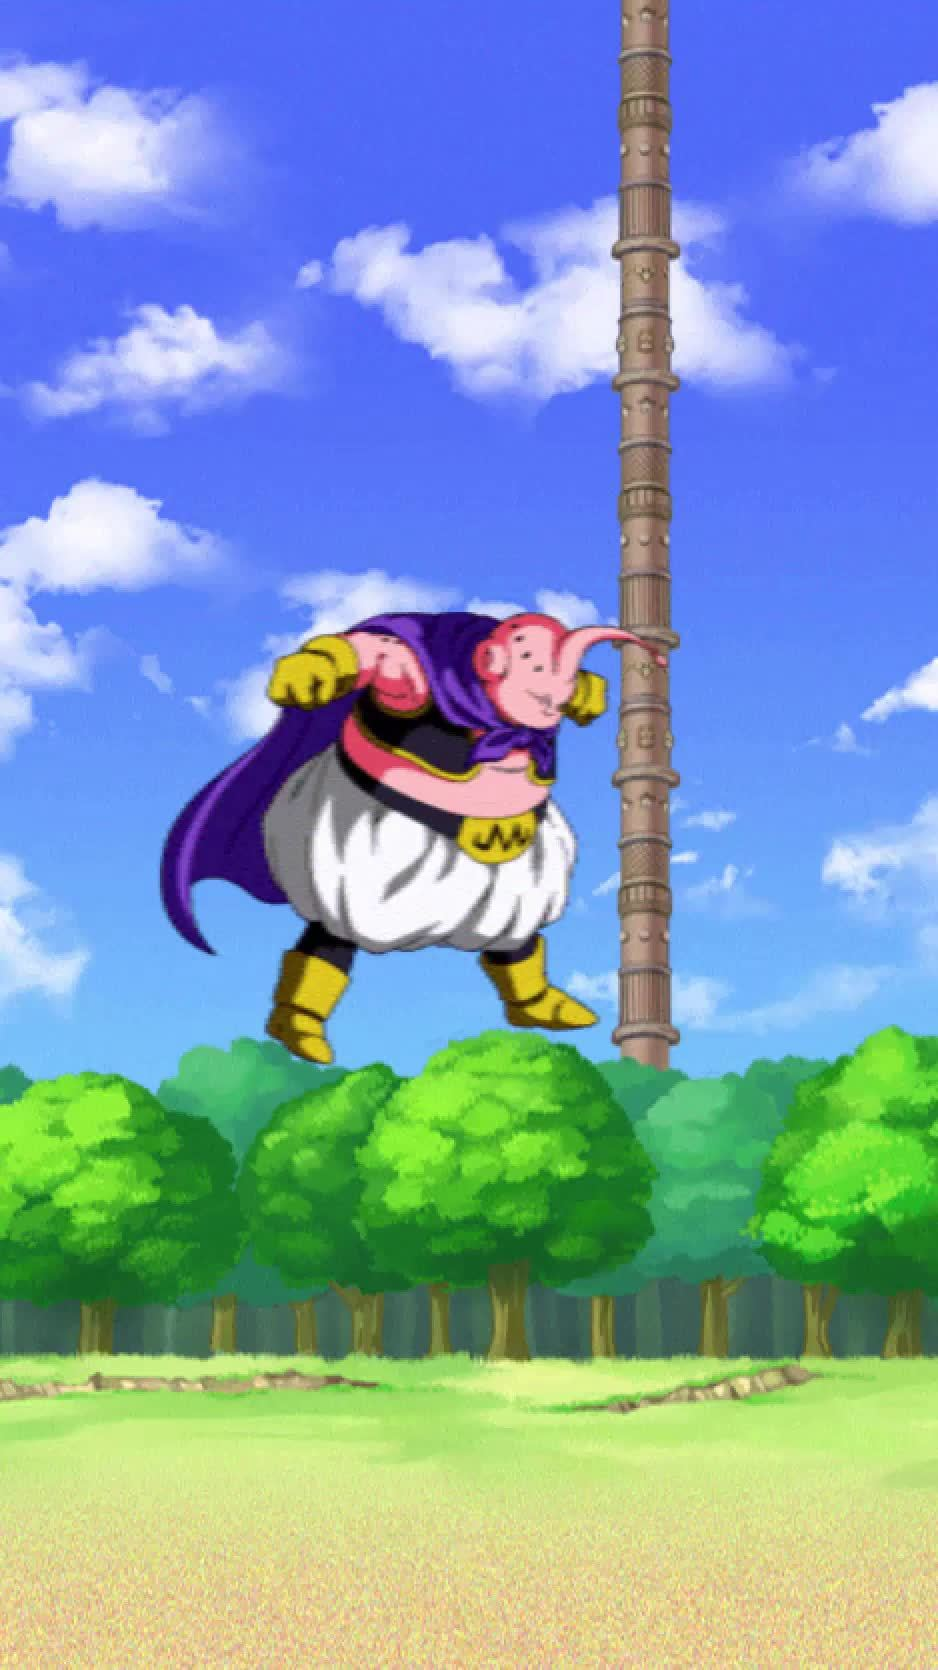 DBZDokkanBattle, Dokkan Battle, dbzdokkanbattle, Buu (Good) Special Attack GIFs